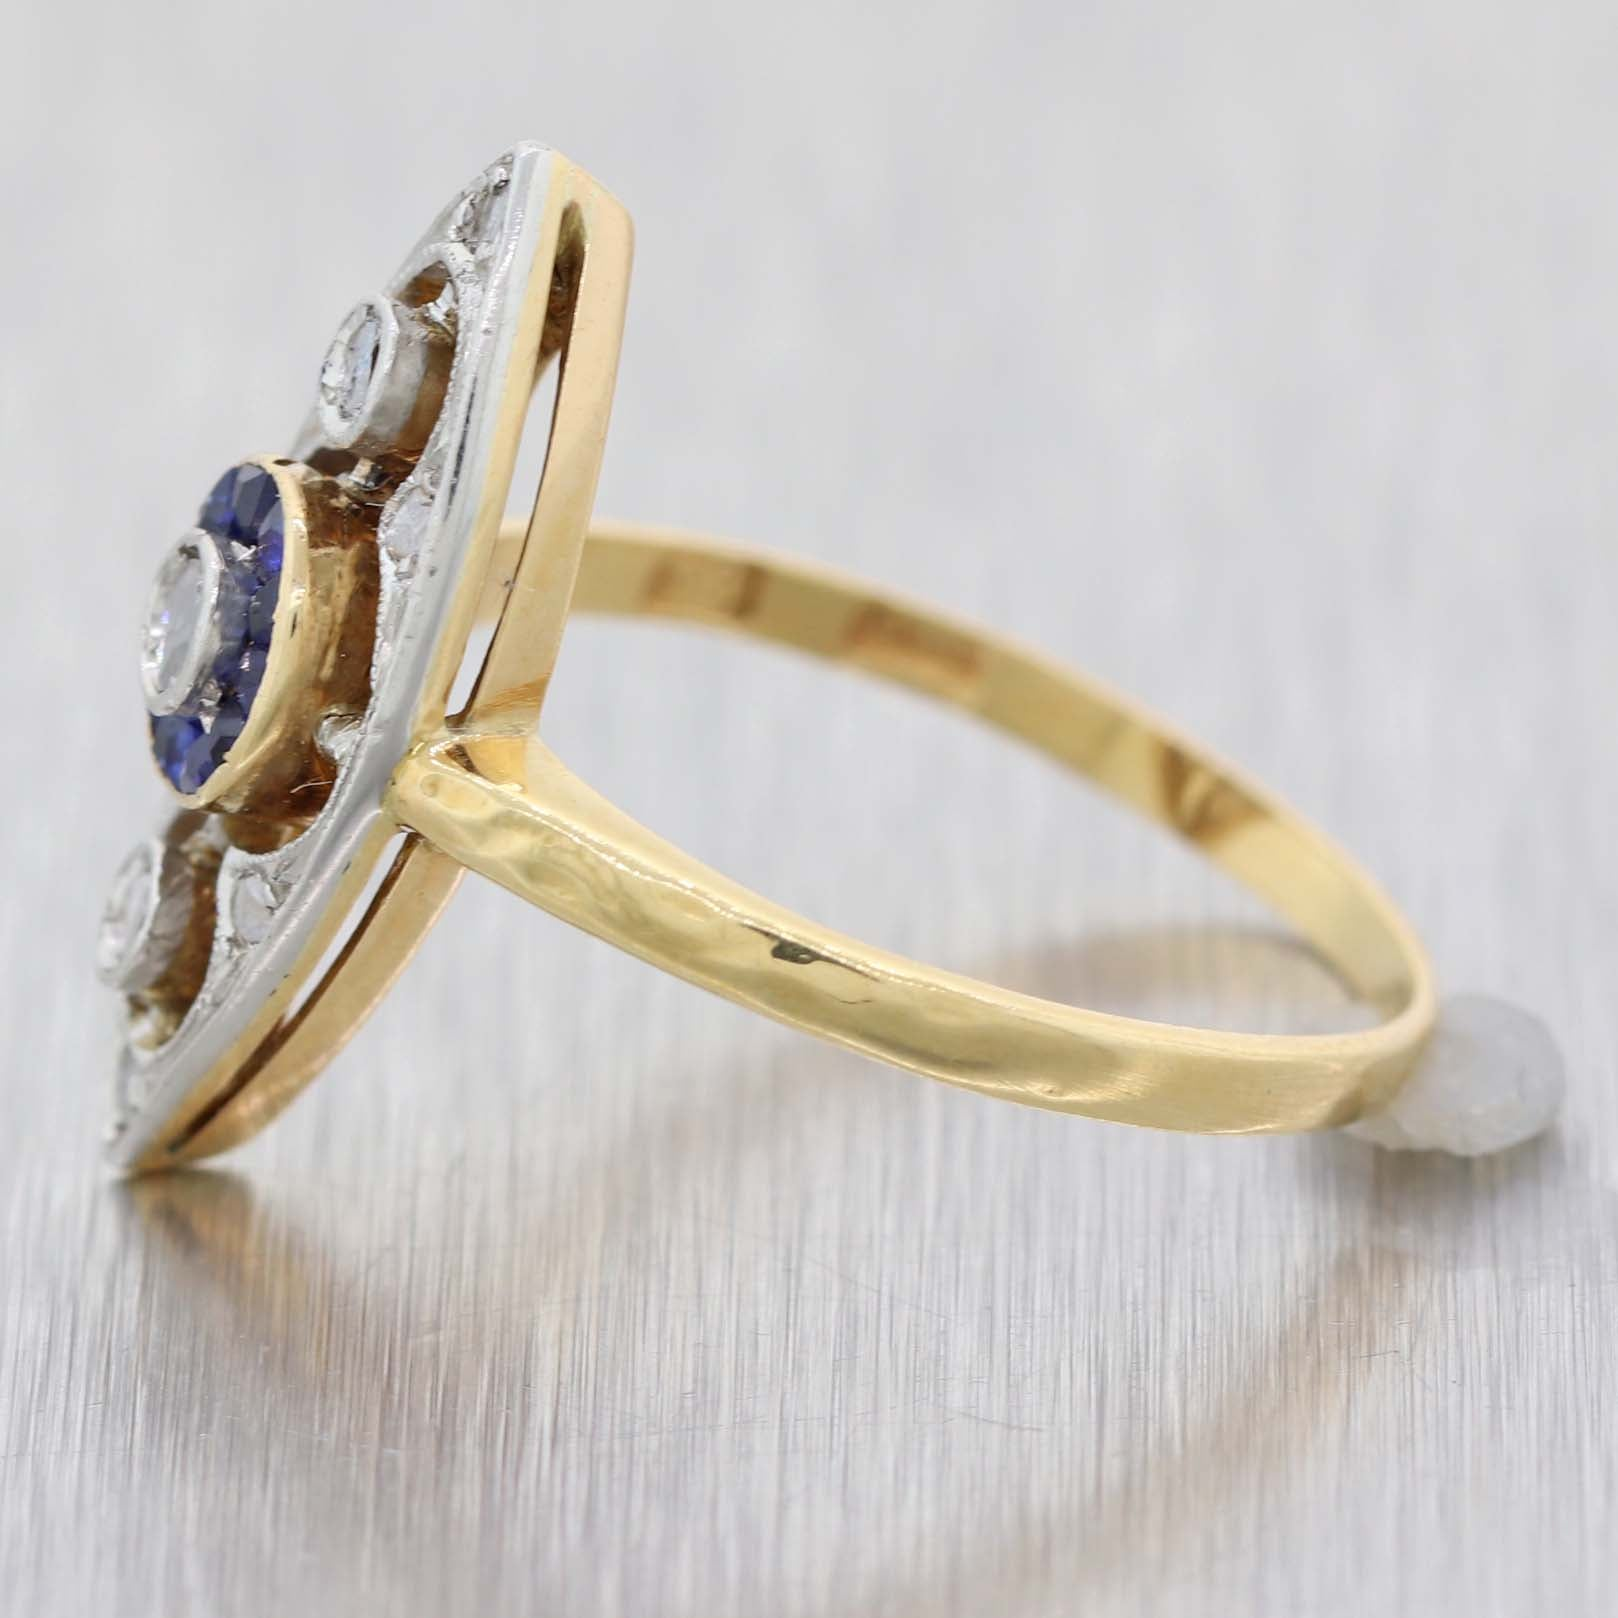 1920s Antique Art Deco Platinum on Yellow Gold Sapphire Diamond Cocktail Ring